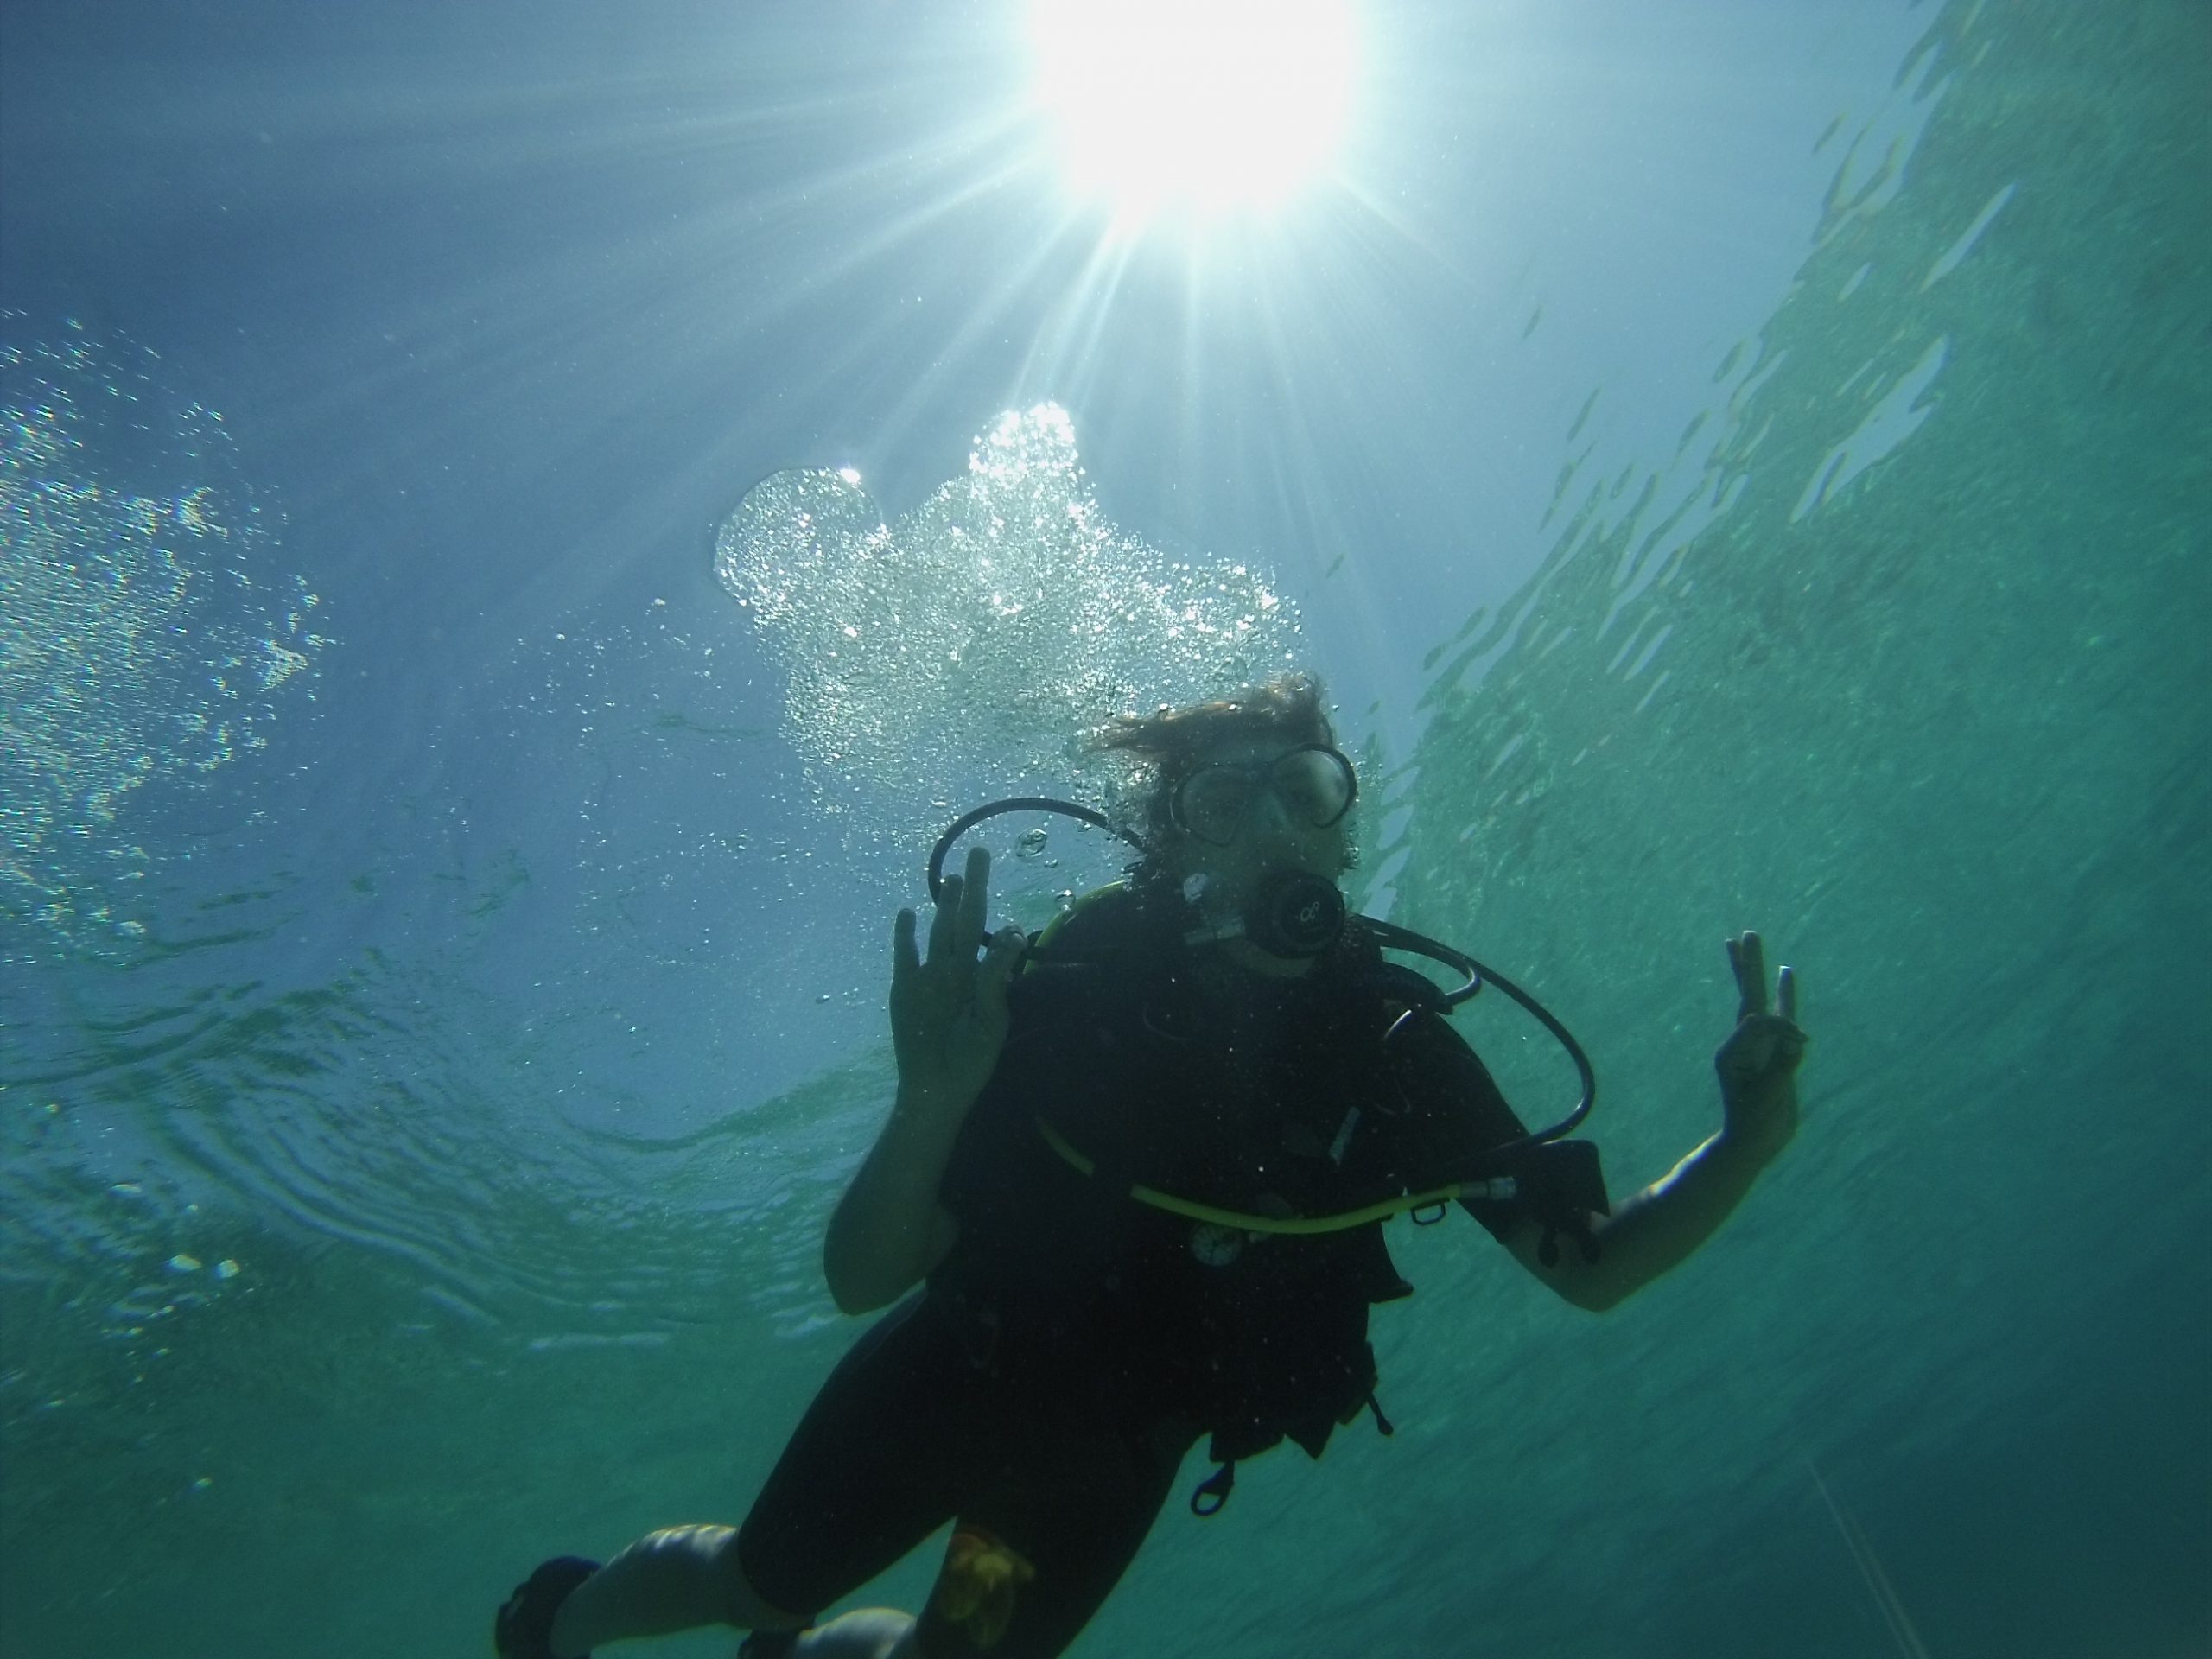 Diver close to the surface